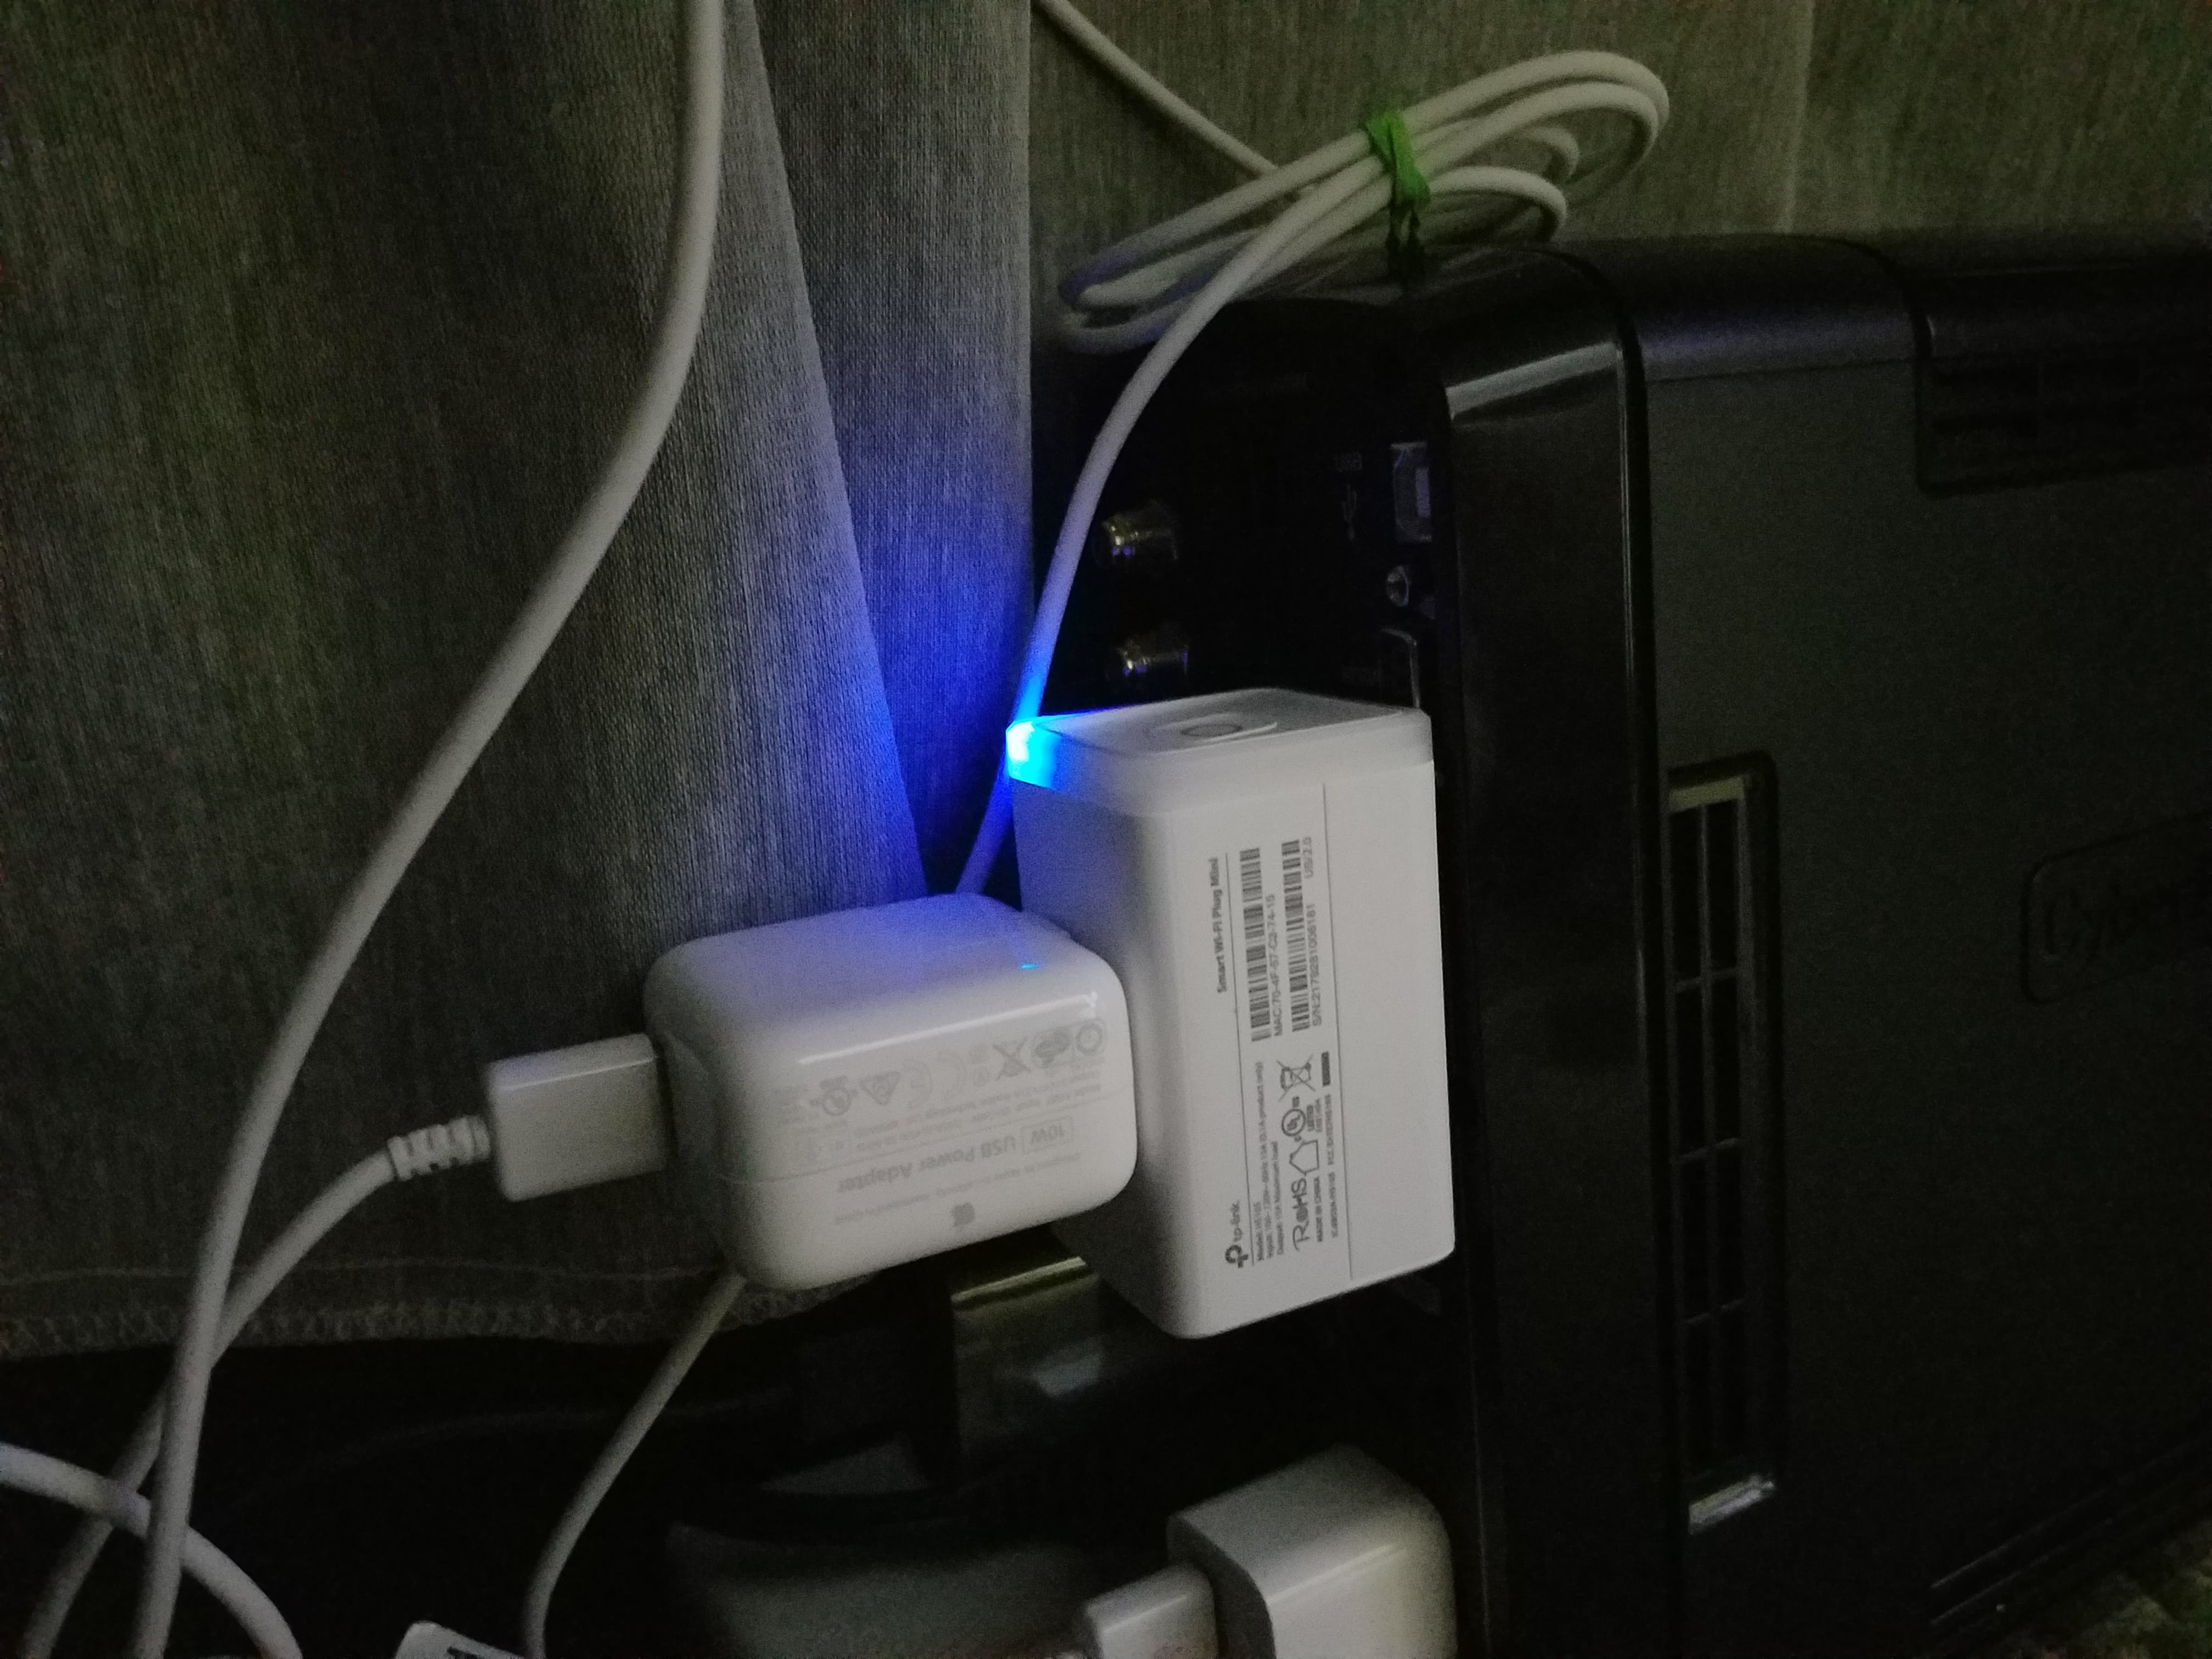 Raspberry Pi Plugged Directly Into TP-Link